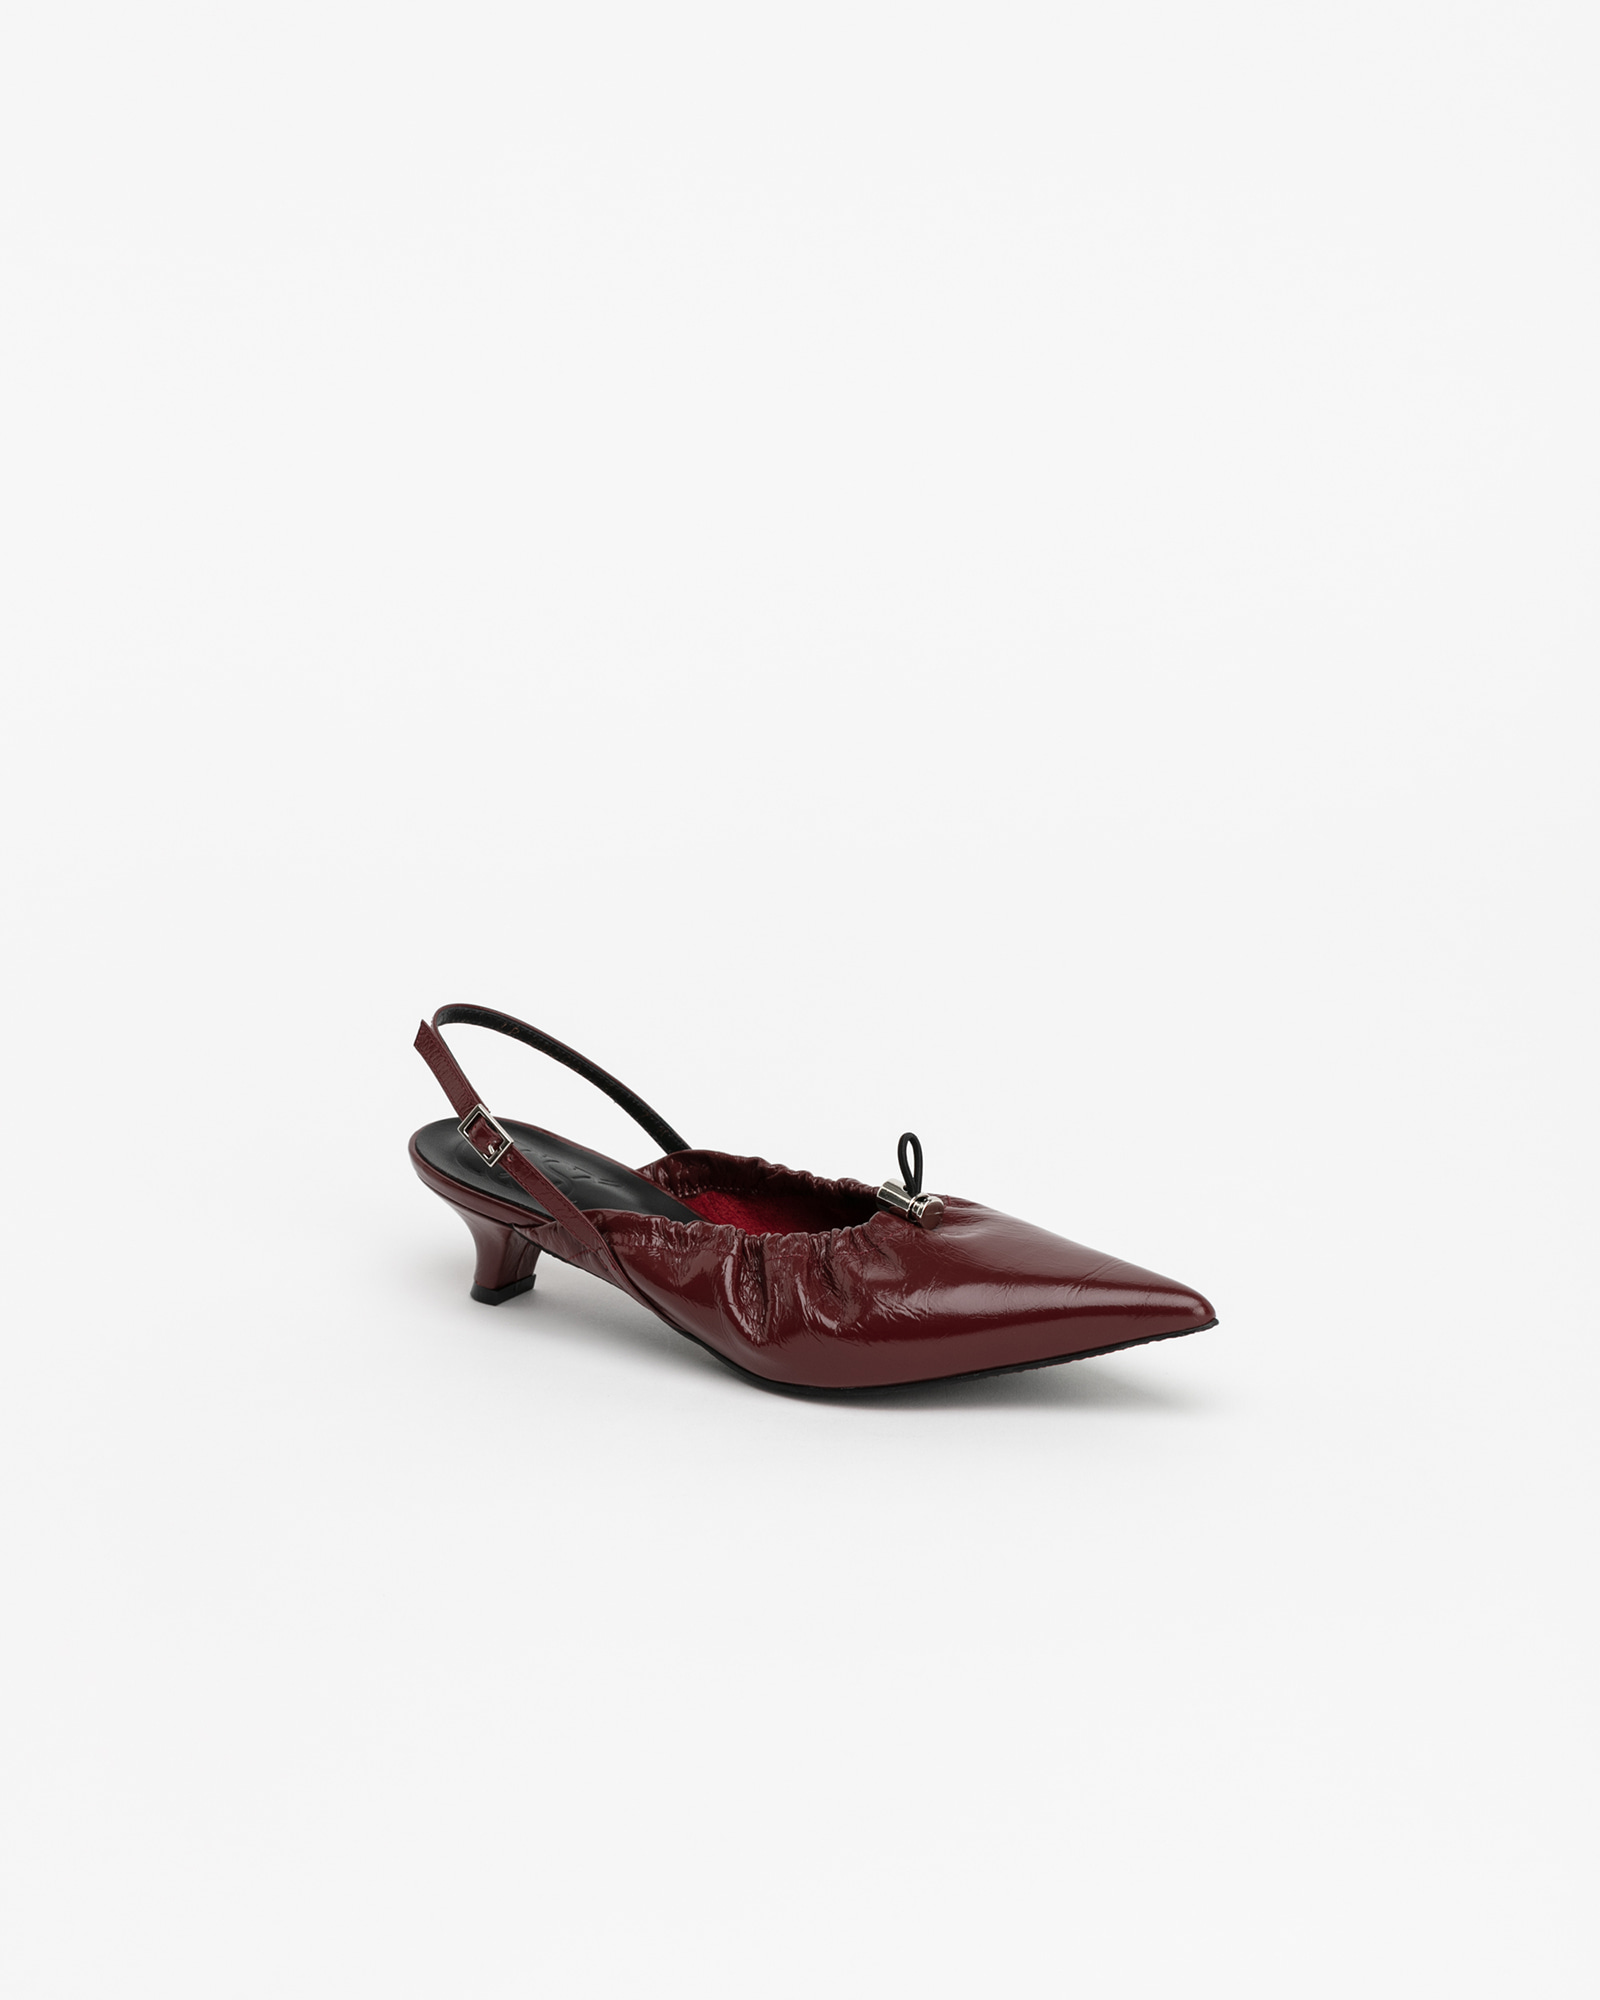 Cote Soft Slingbacks in Textured WIne